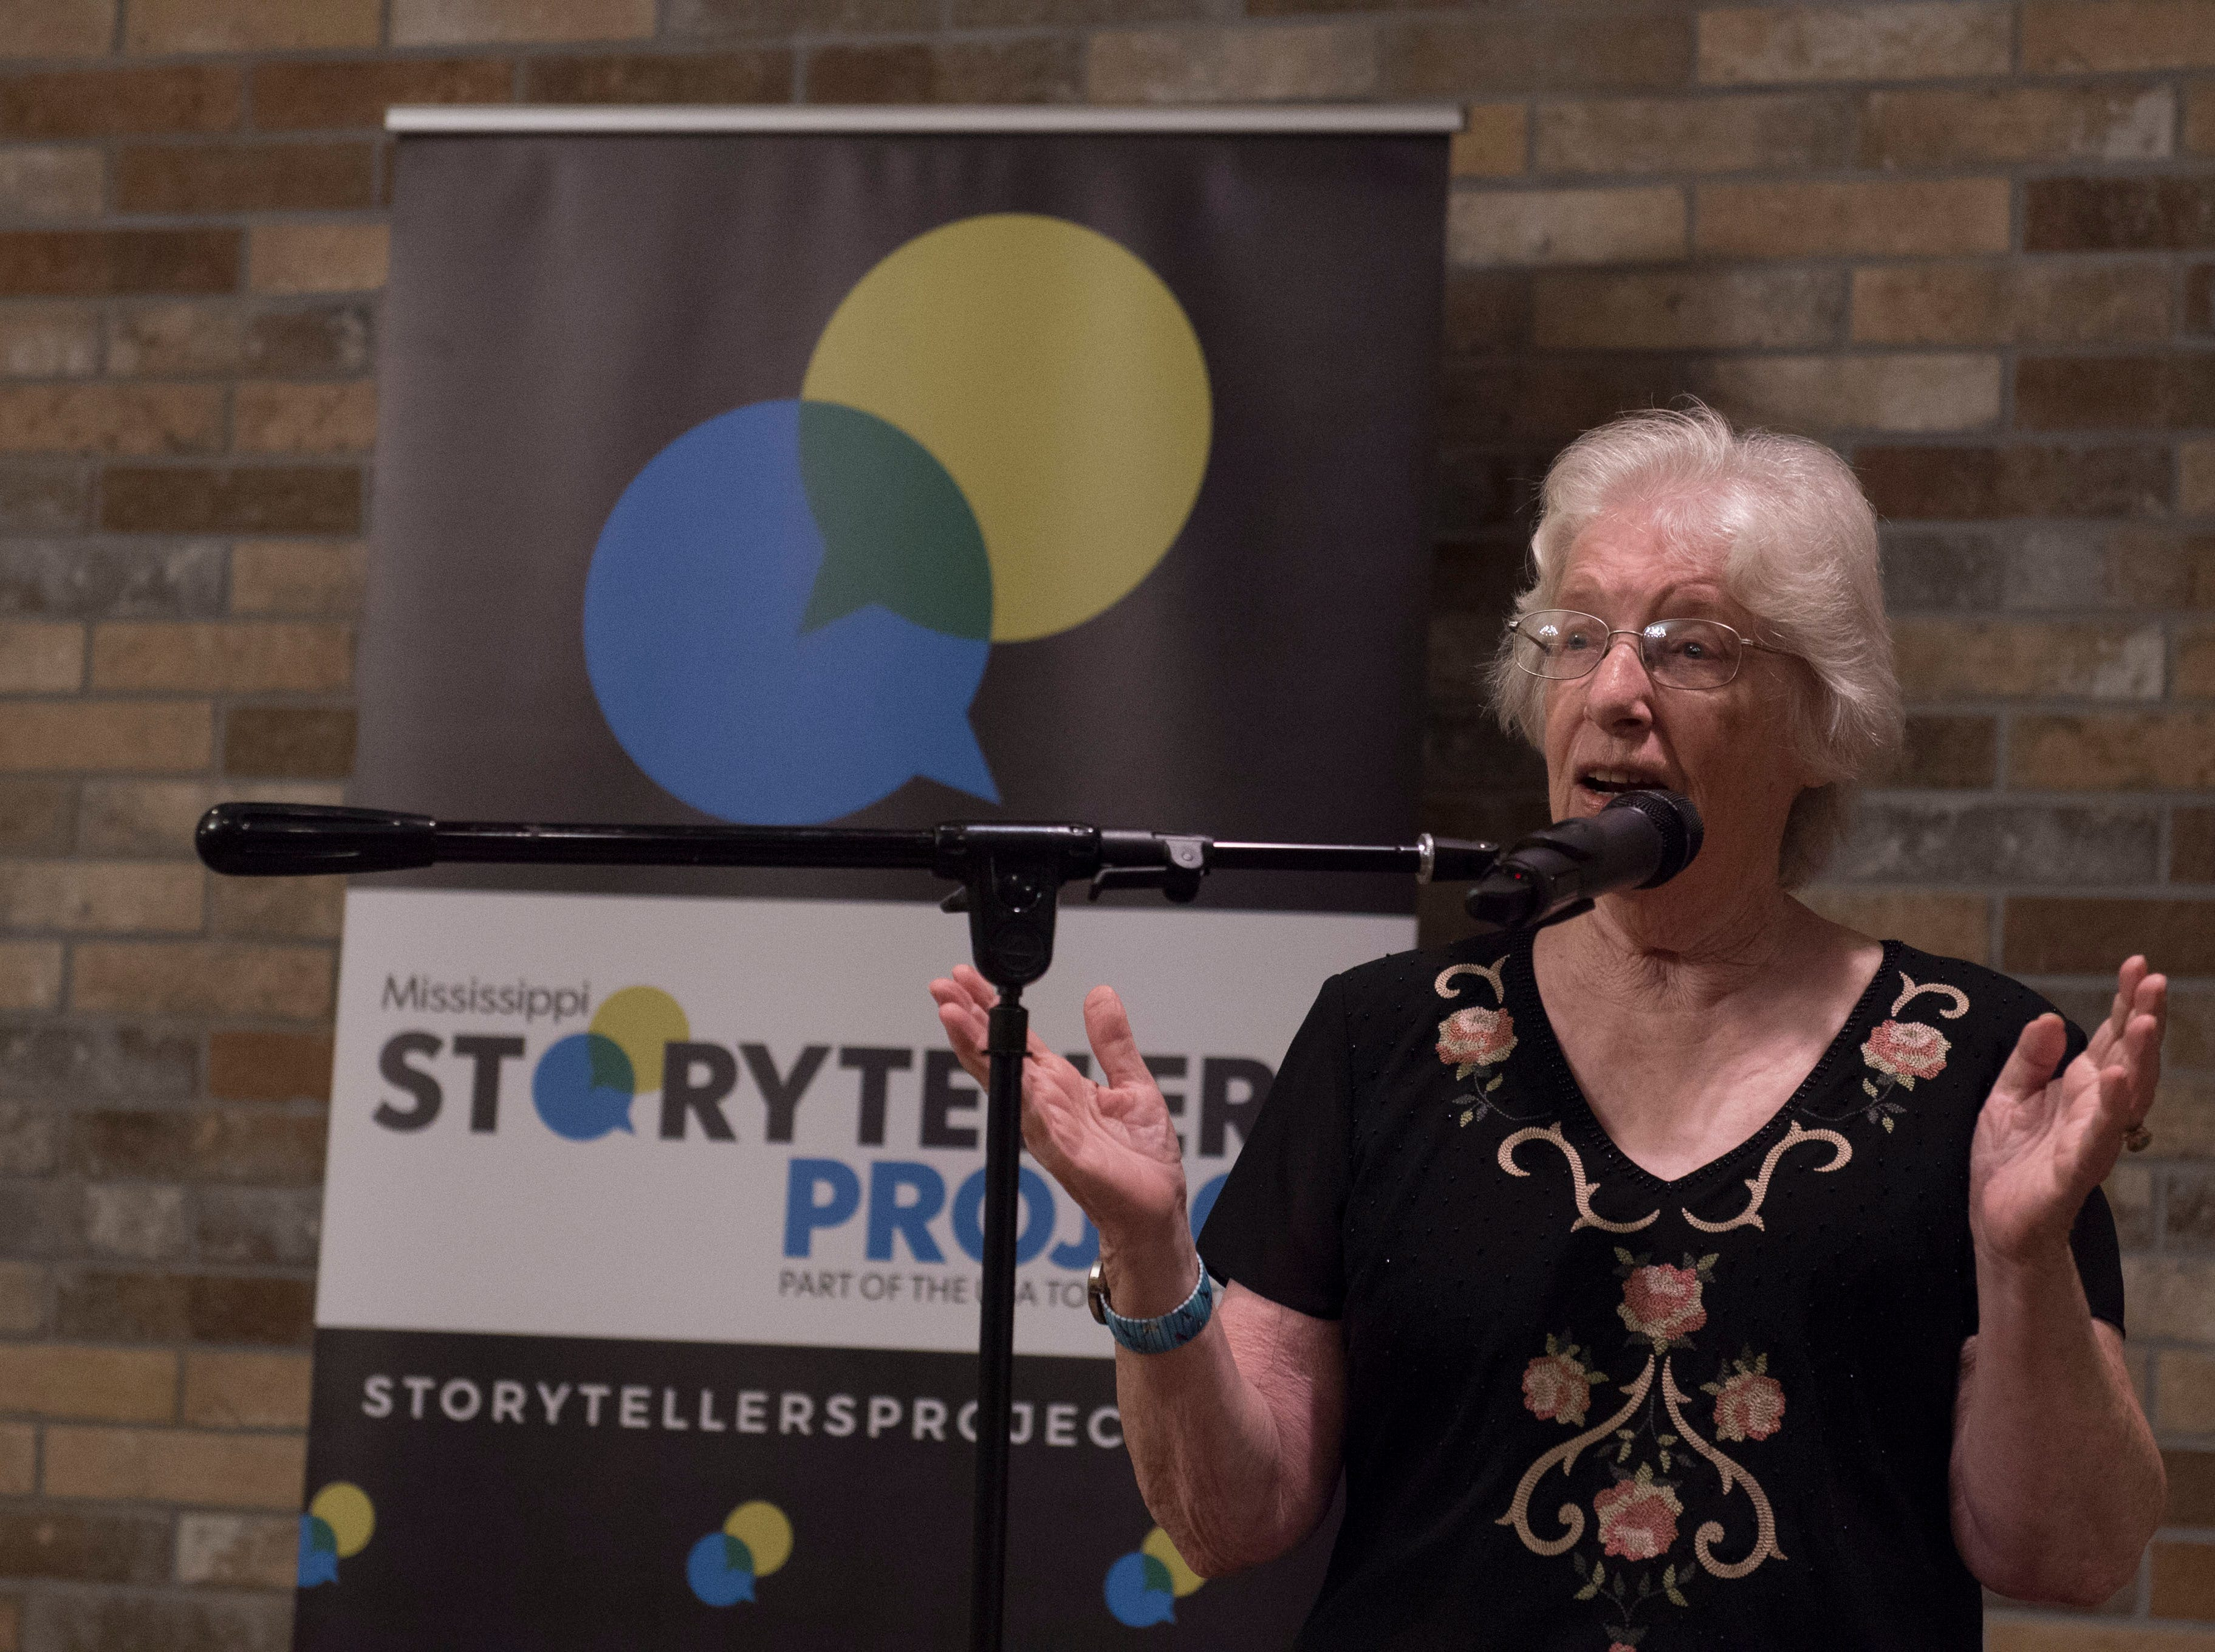 Nash Noble tells attendees of Mississippi Storytellers: Growing Up about a friendship that was more than skin deep. Tuesday, Sept. 18, 2018.